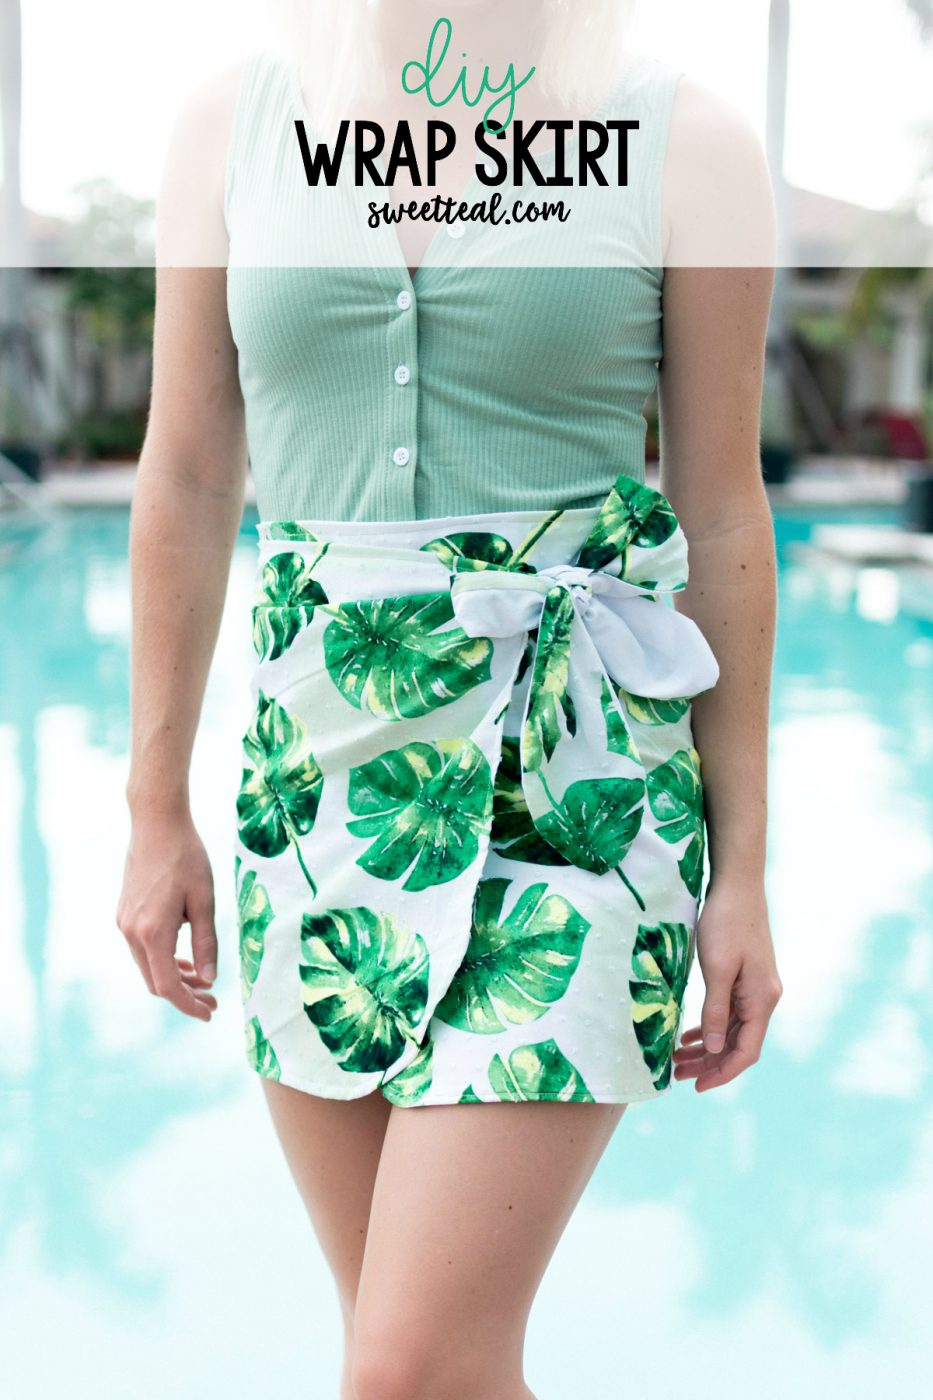 DIY Wrap Skirt by Jenny of Sweet Teal (Super Easy!)